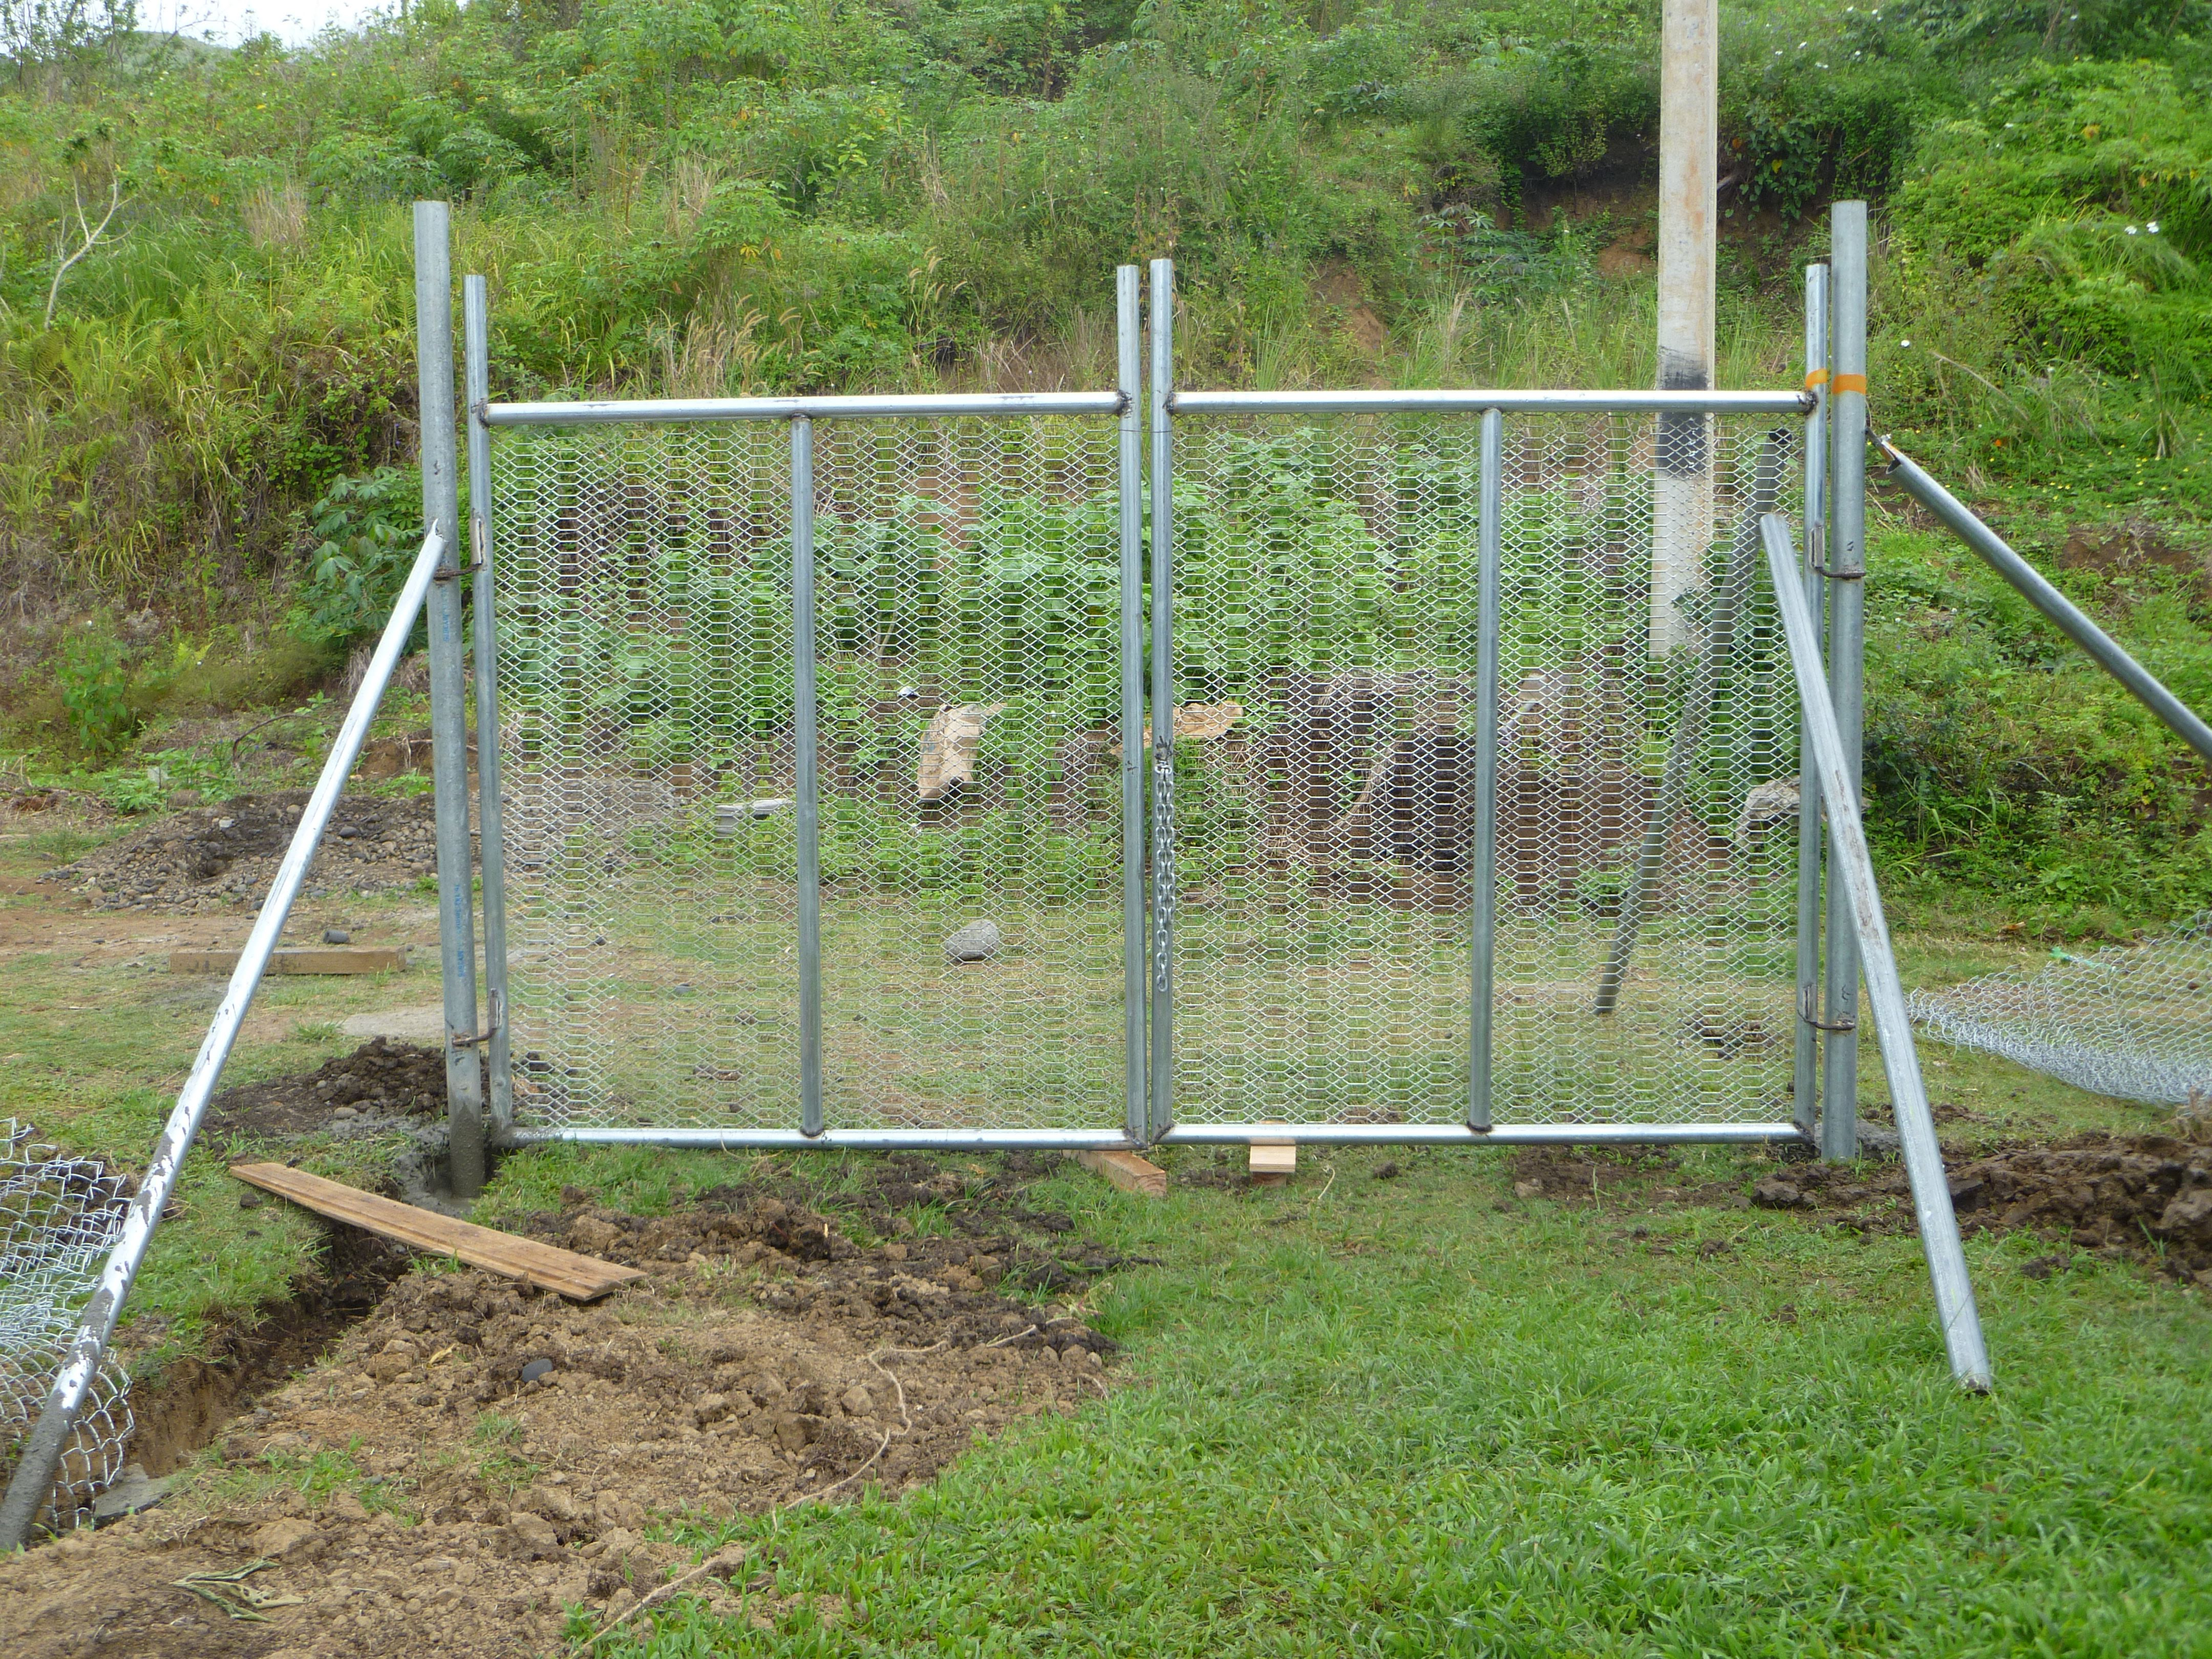 One-of-two-gates-built-with-the-fence